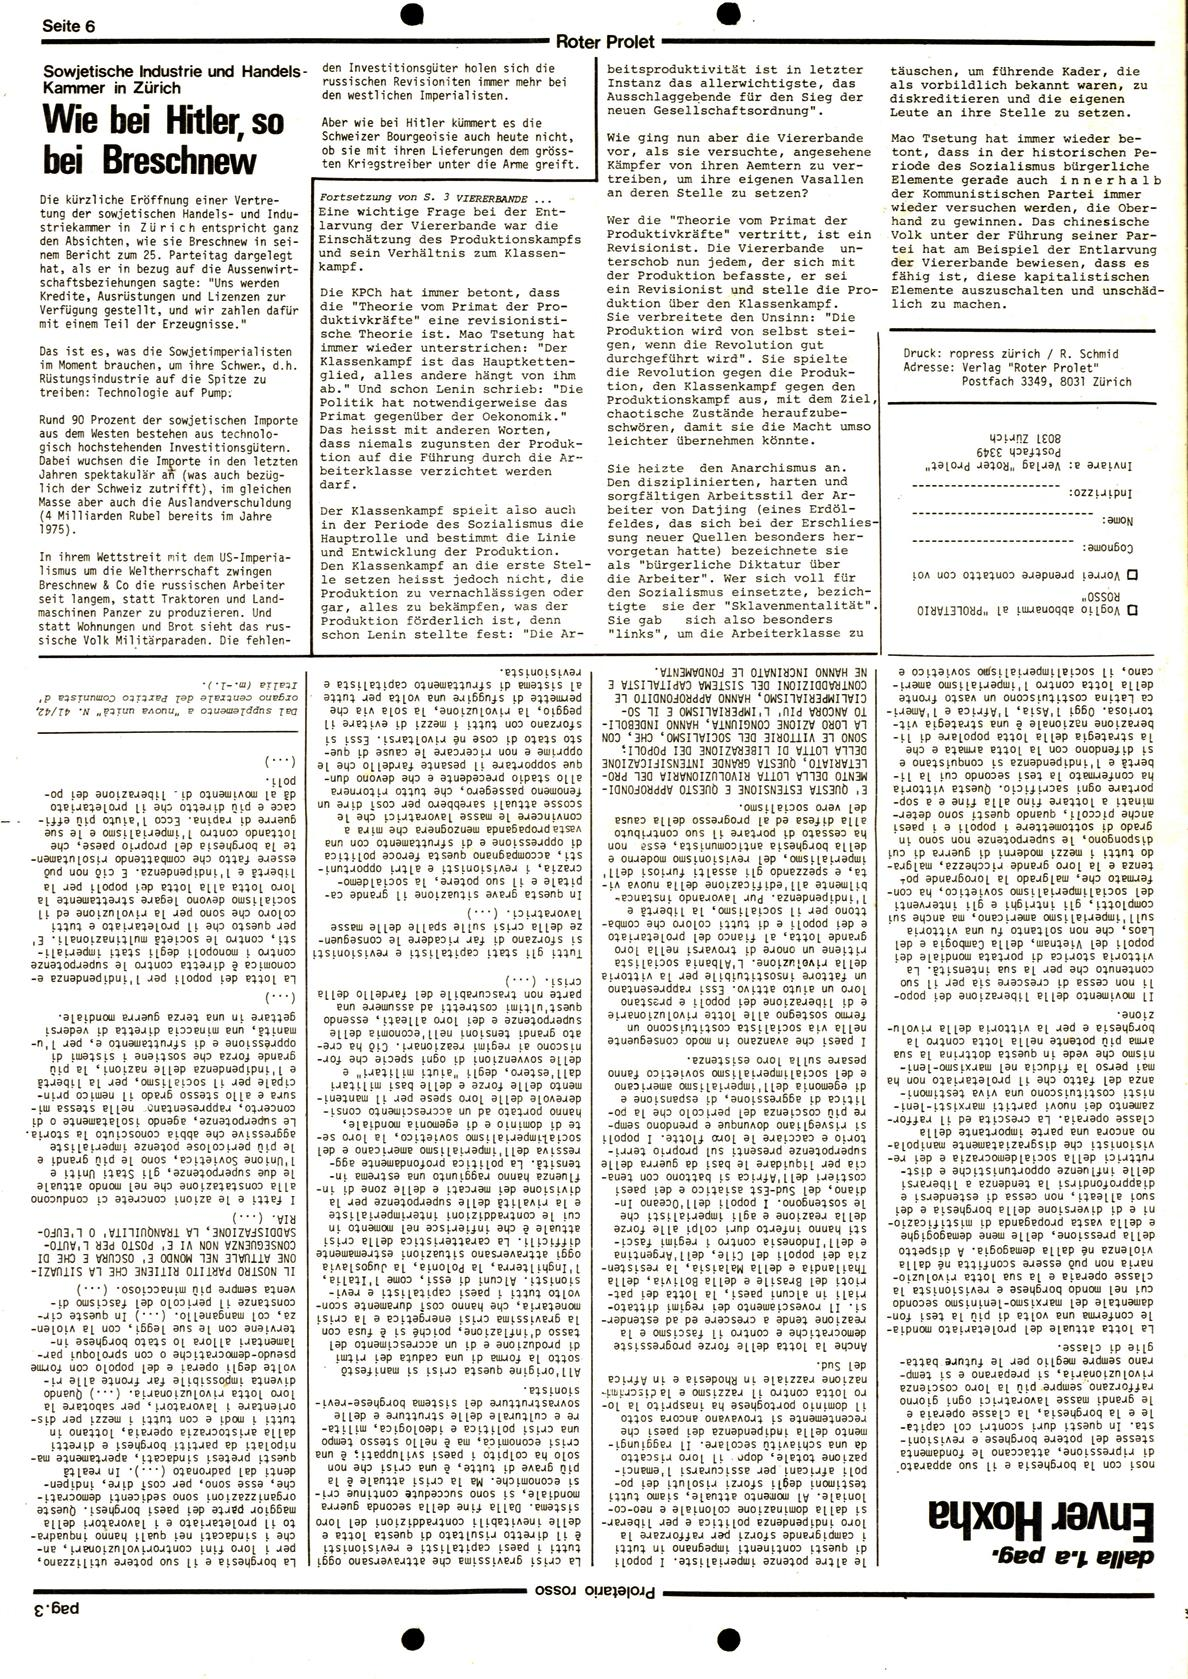 CH_KBML_Roter_Prolet_19770100_06